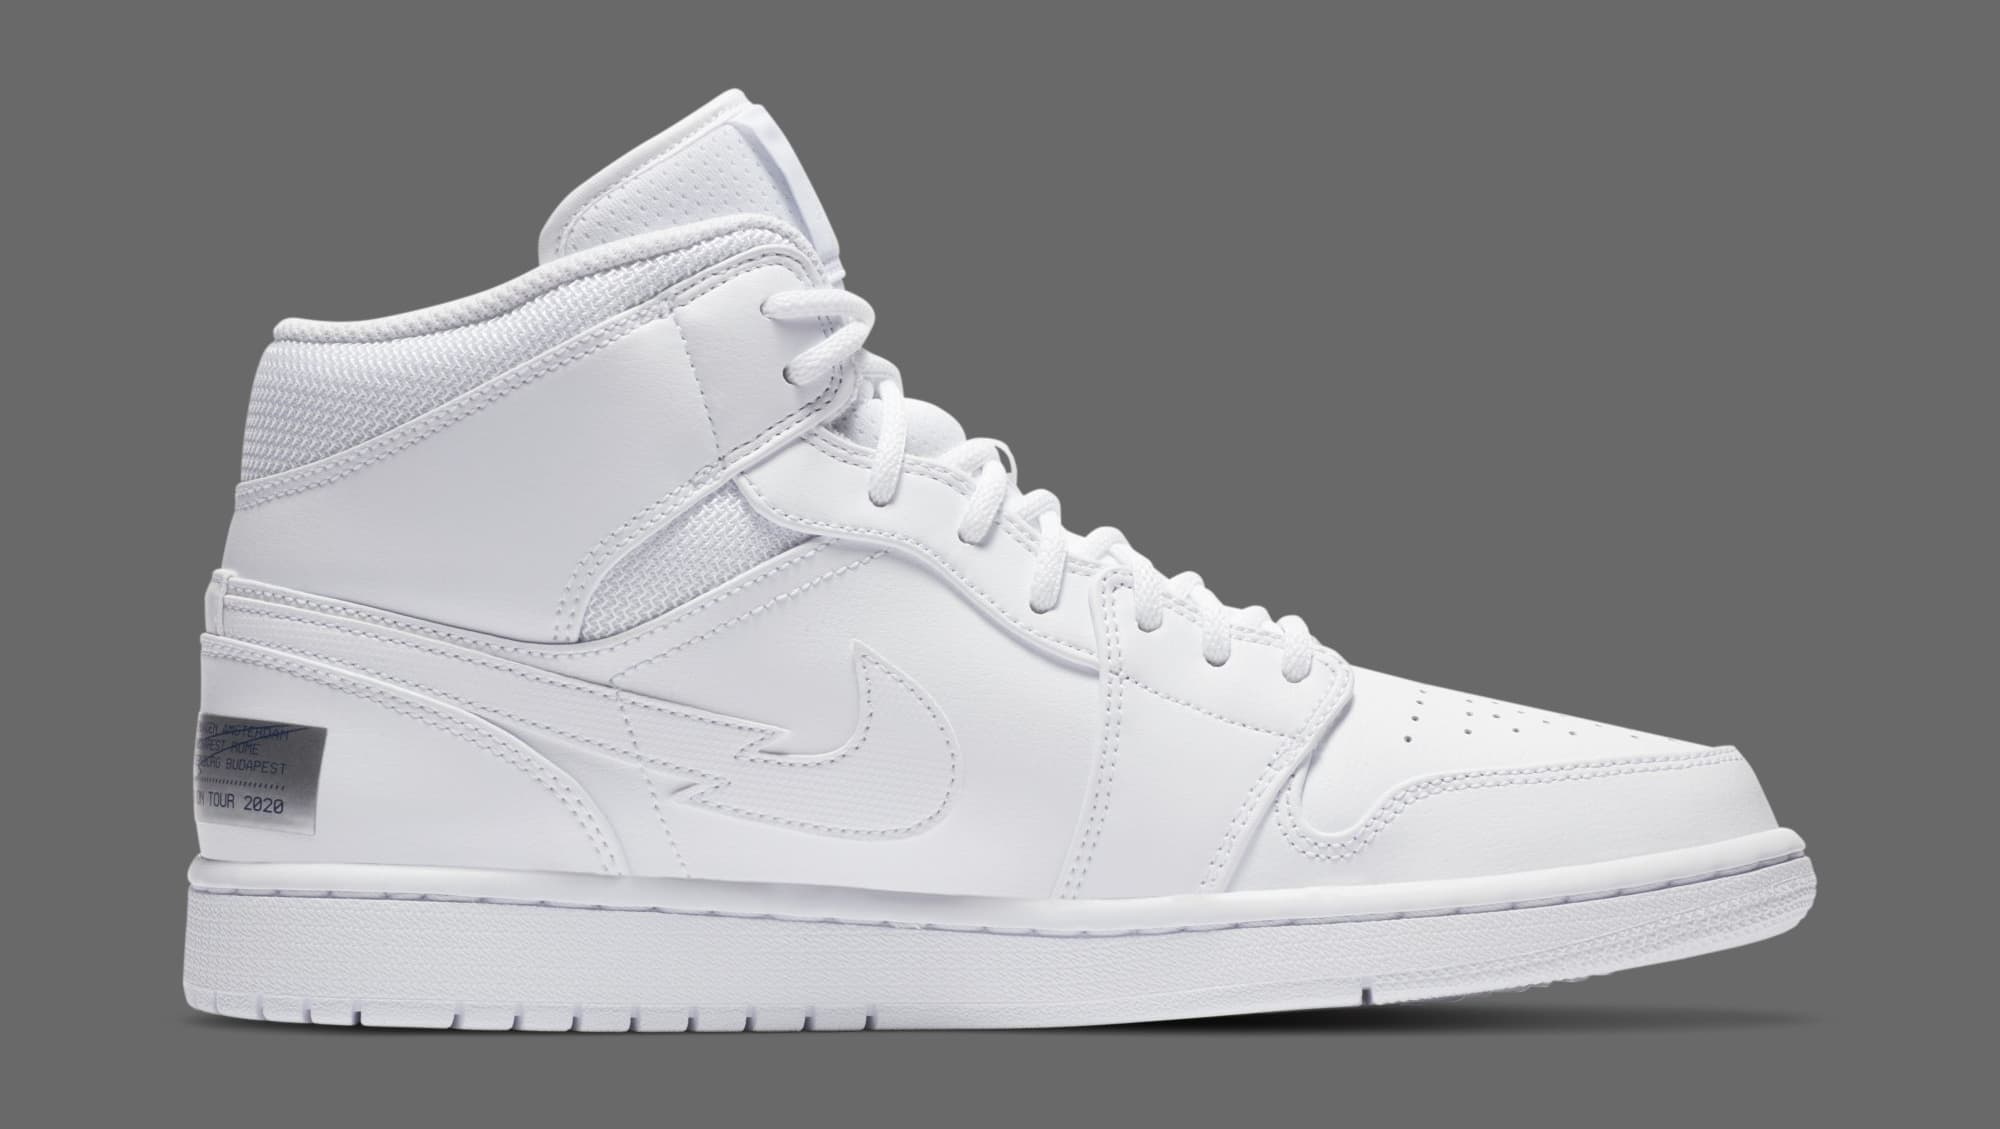 Air Jordan 1 Retro Mid 'Euro Tour' CW7589-100 Medial